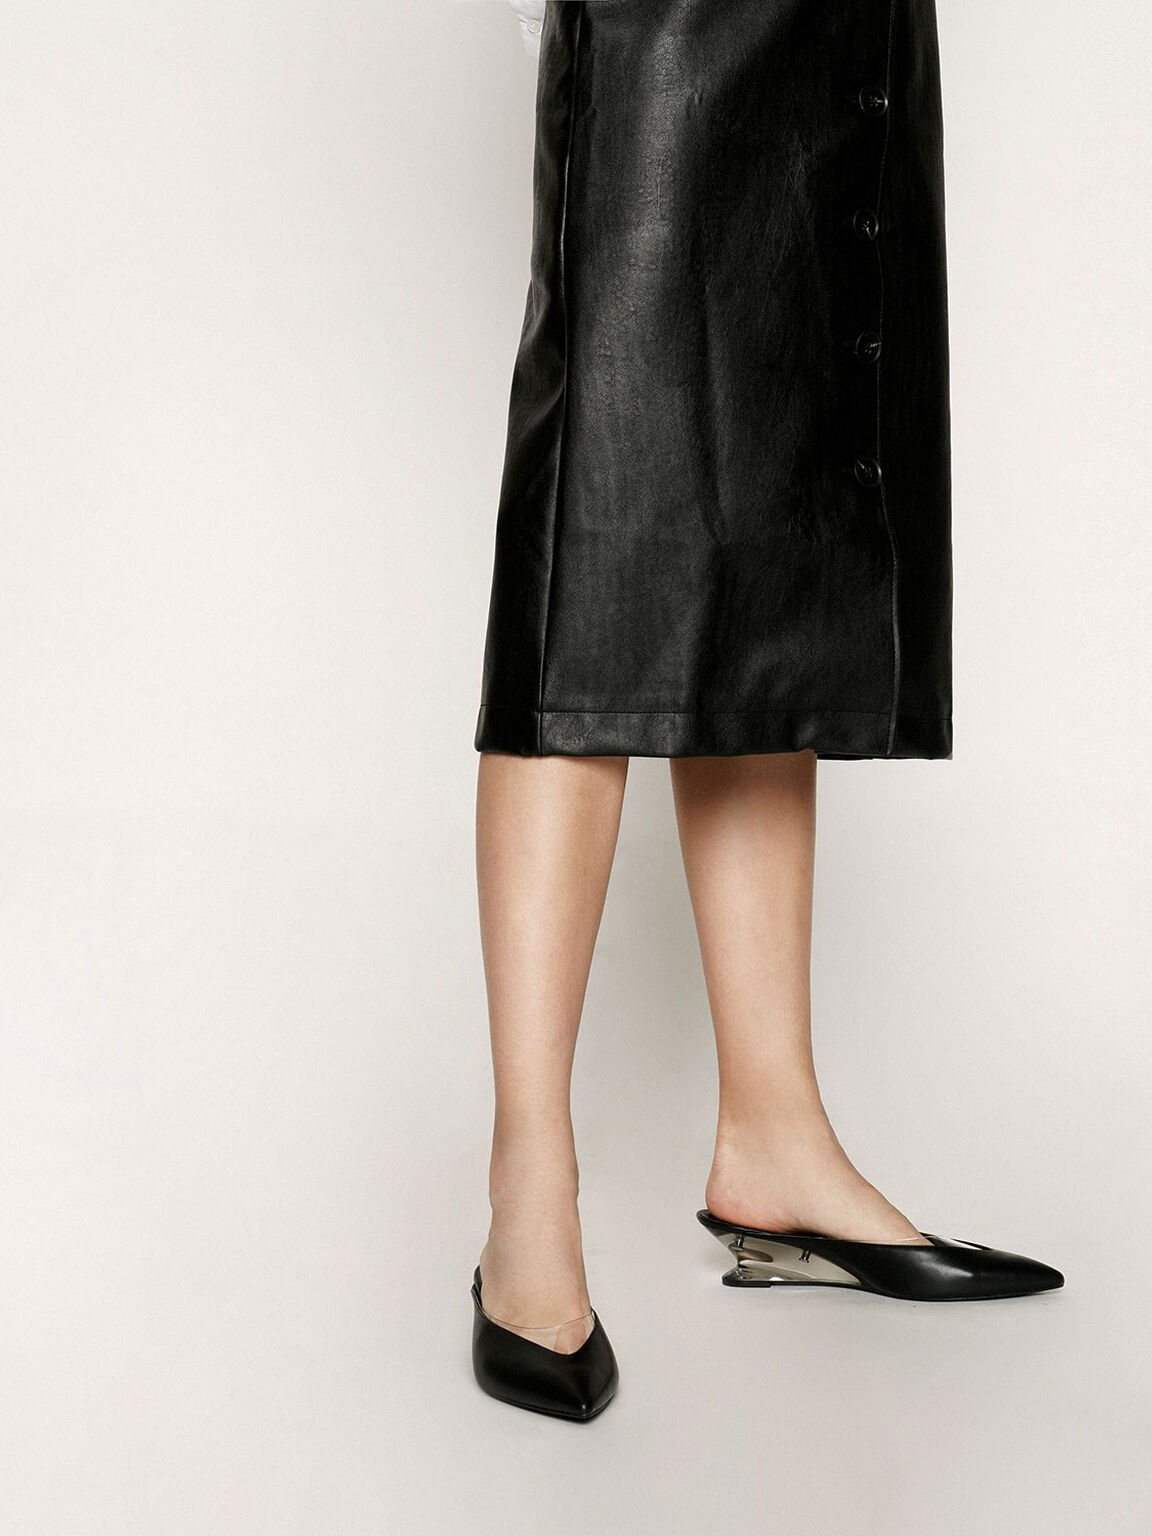 See-Through Effect Pointed Toe Mules, Black, hi-res